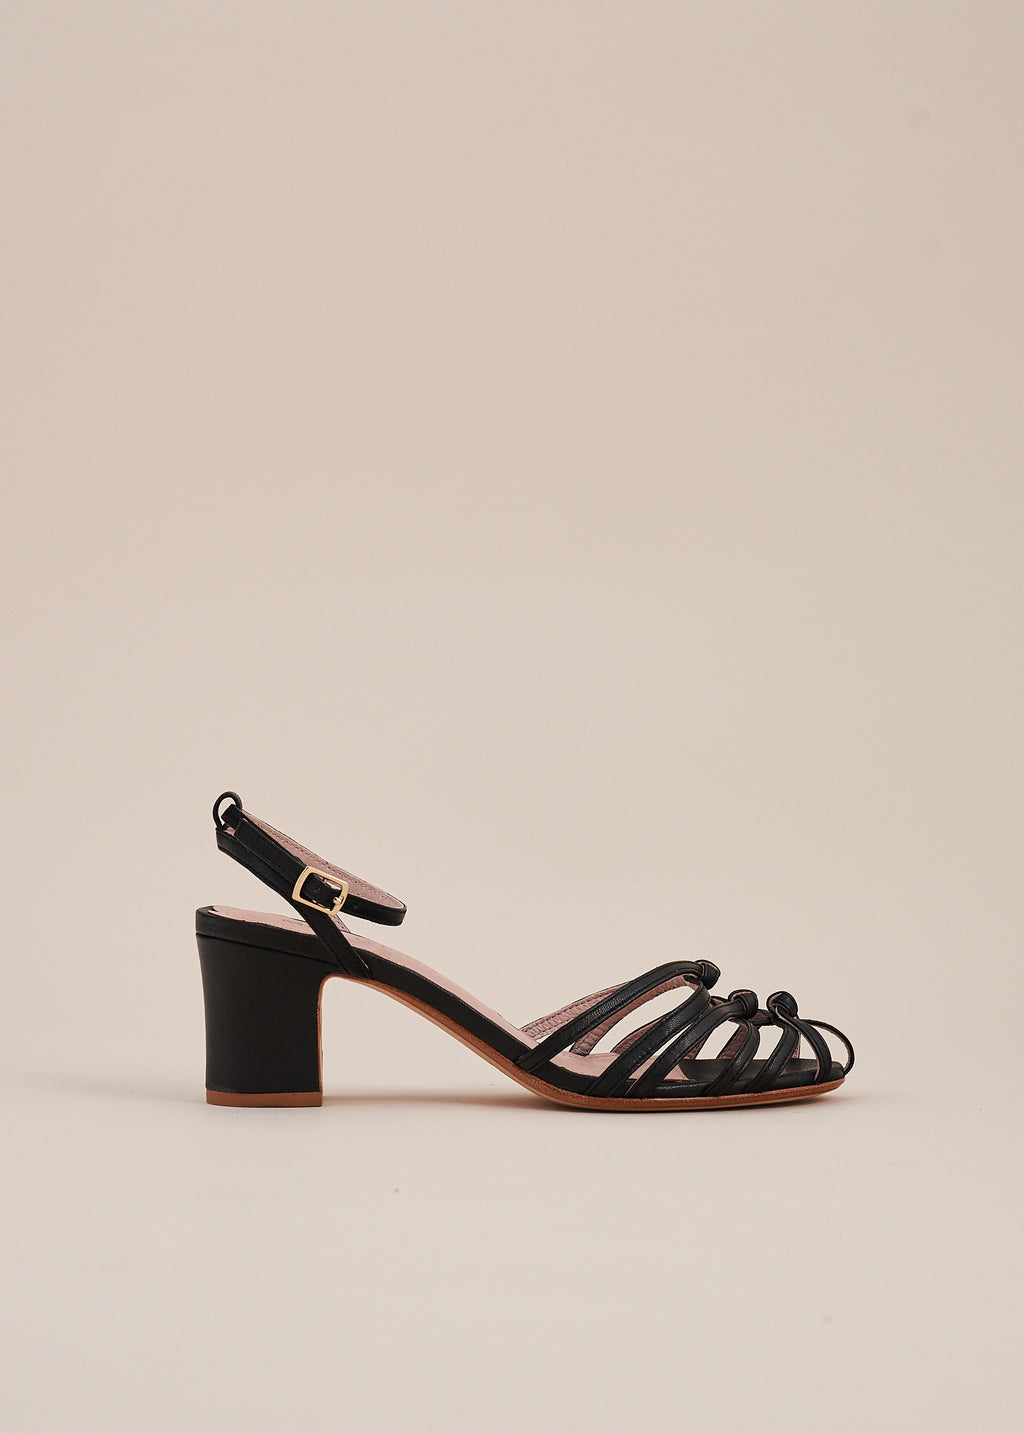 Lois by Miss L Fire is a strappy knotted upper sandal in soft black leather by London Designer, Miss L Fire. Small batch, ethically produced.